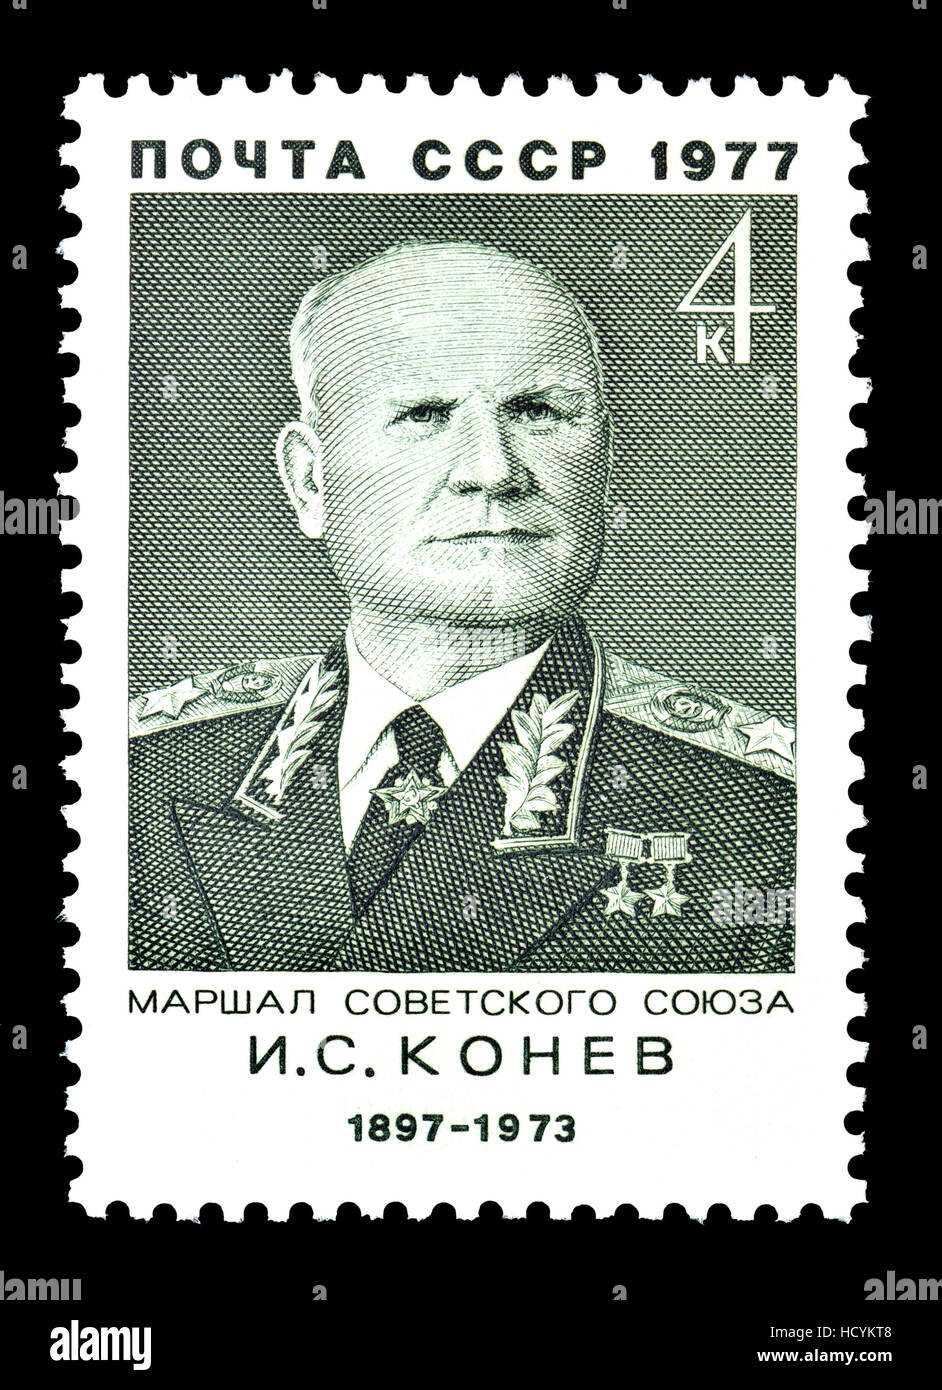 Soviet Union postage stamp (1977) : Ivan Stepanovich Konev / Koniev (1897-1973) Military Commander who led Red Army - Stock Image